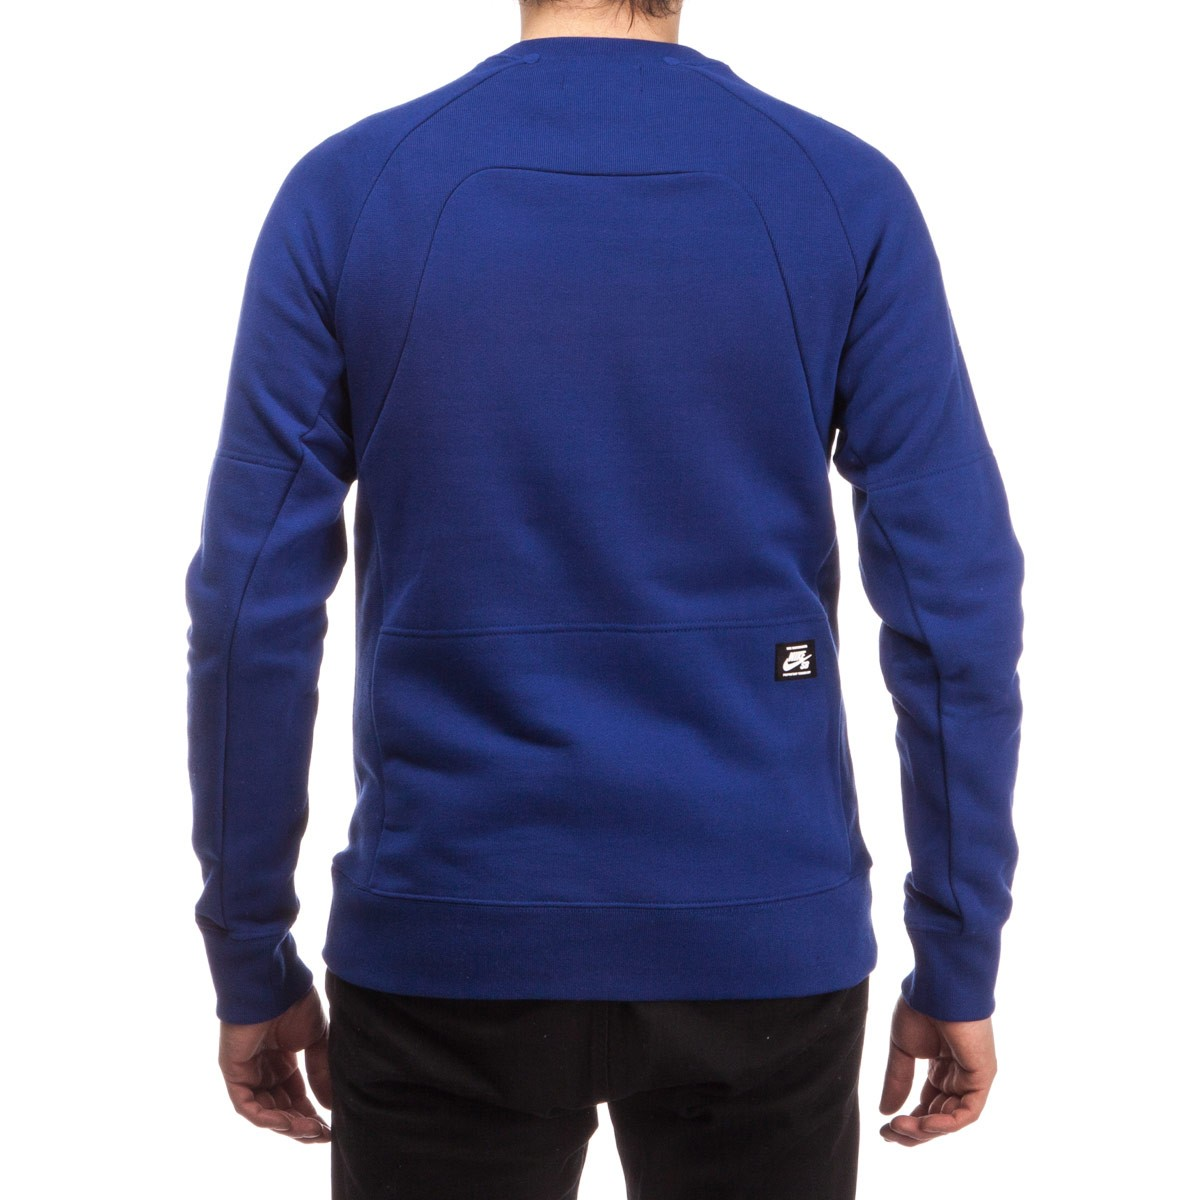 de1ee8c630f5 Nike SB Everett Motion Crew Sweatshirt - Royal Blue White